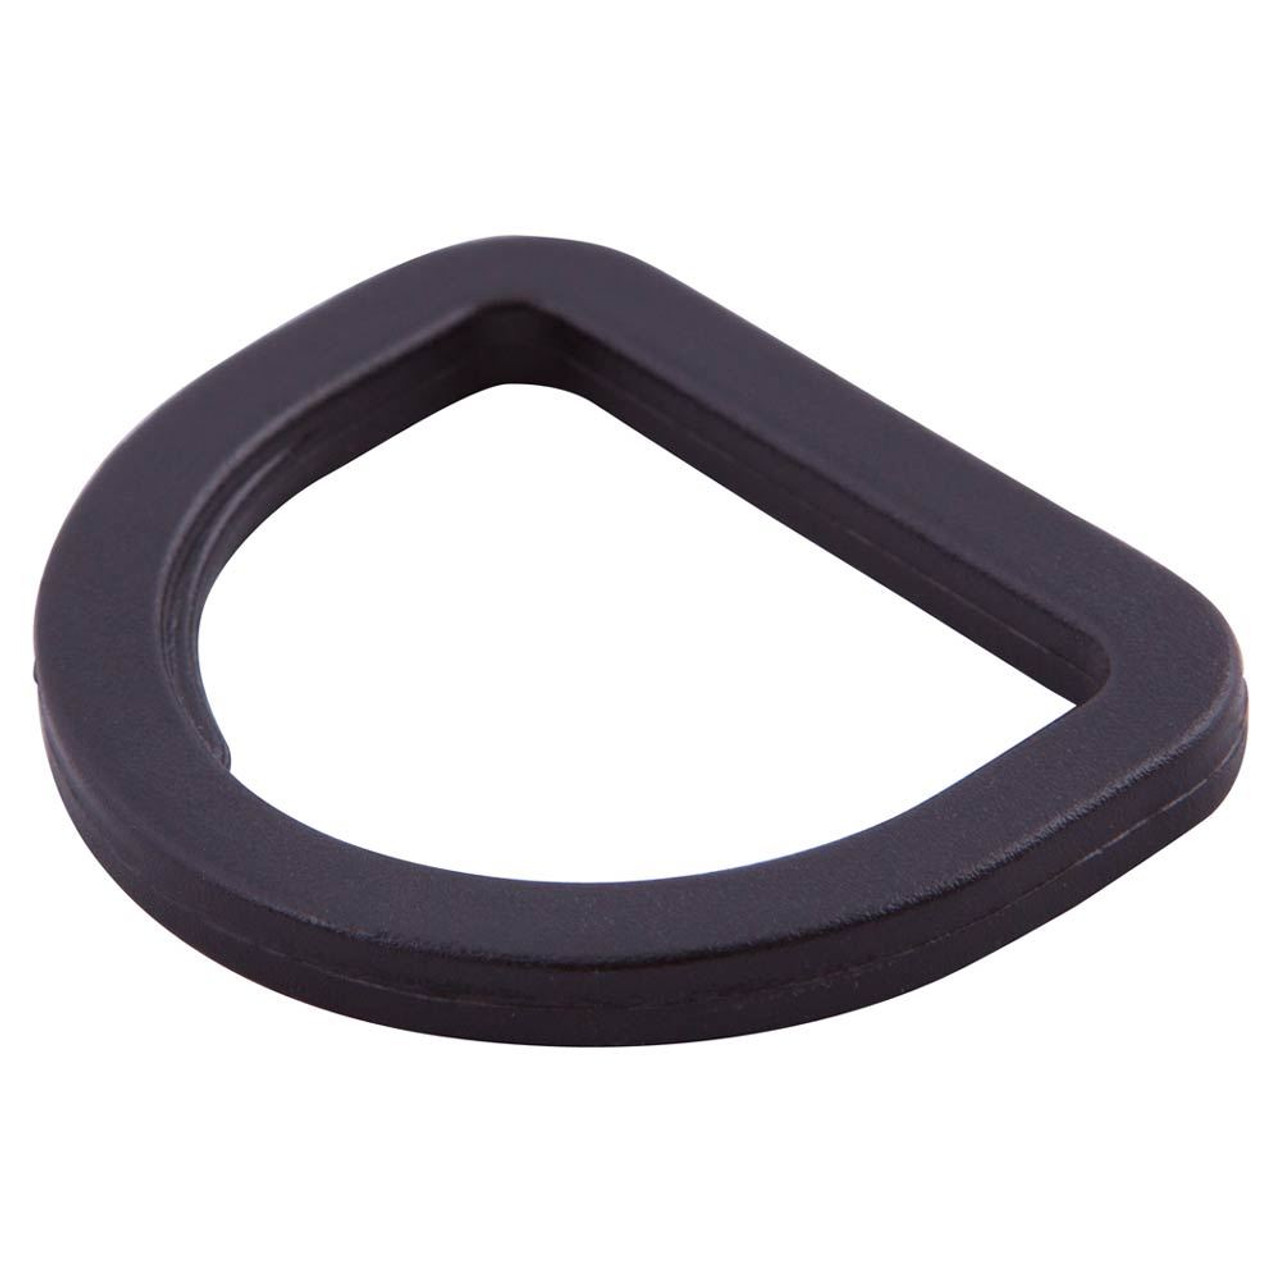 plastic img silicone rings toys and black tools wedding qalo